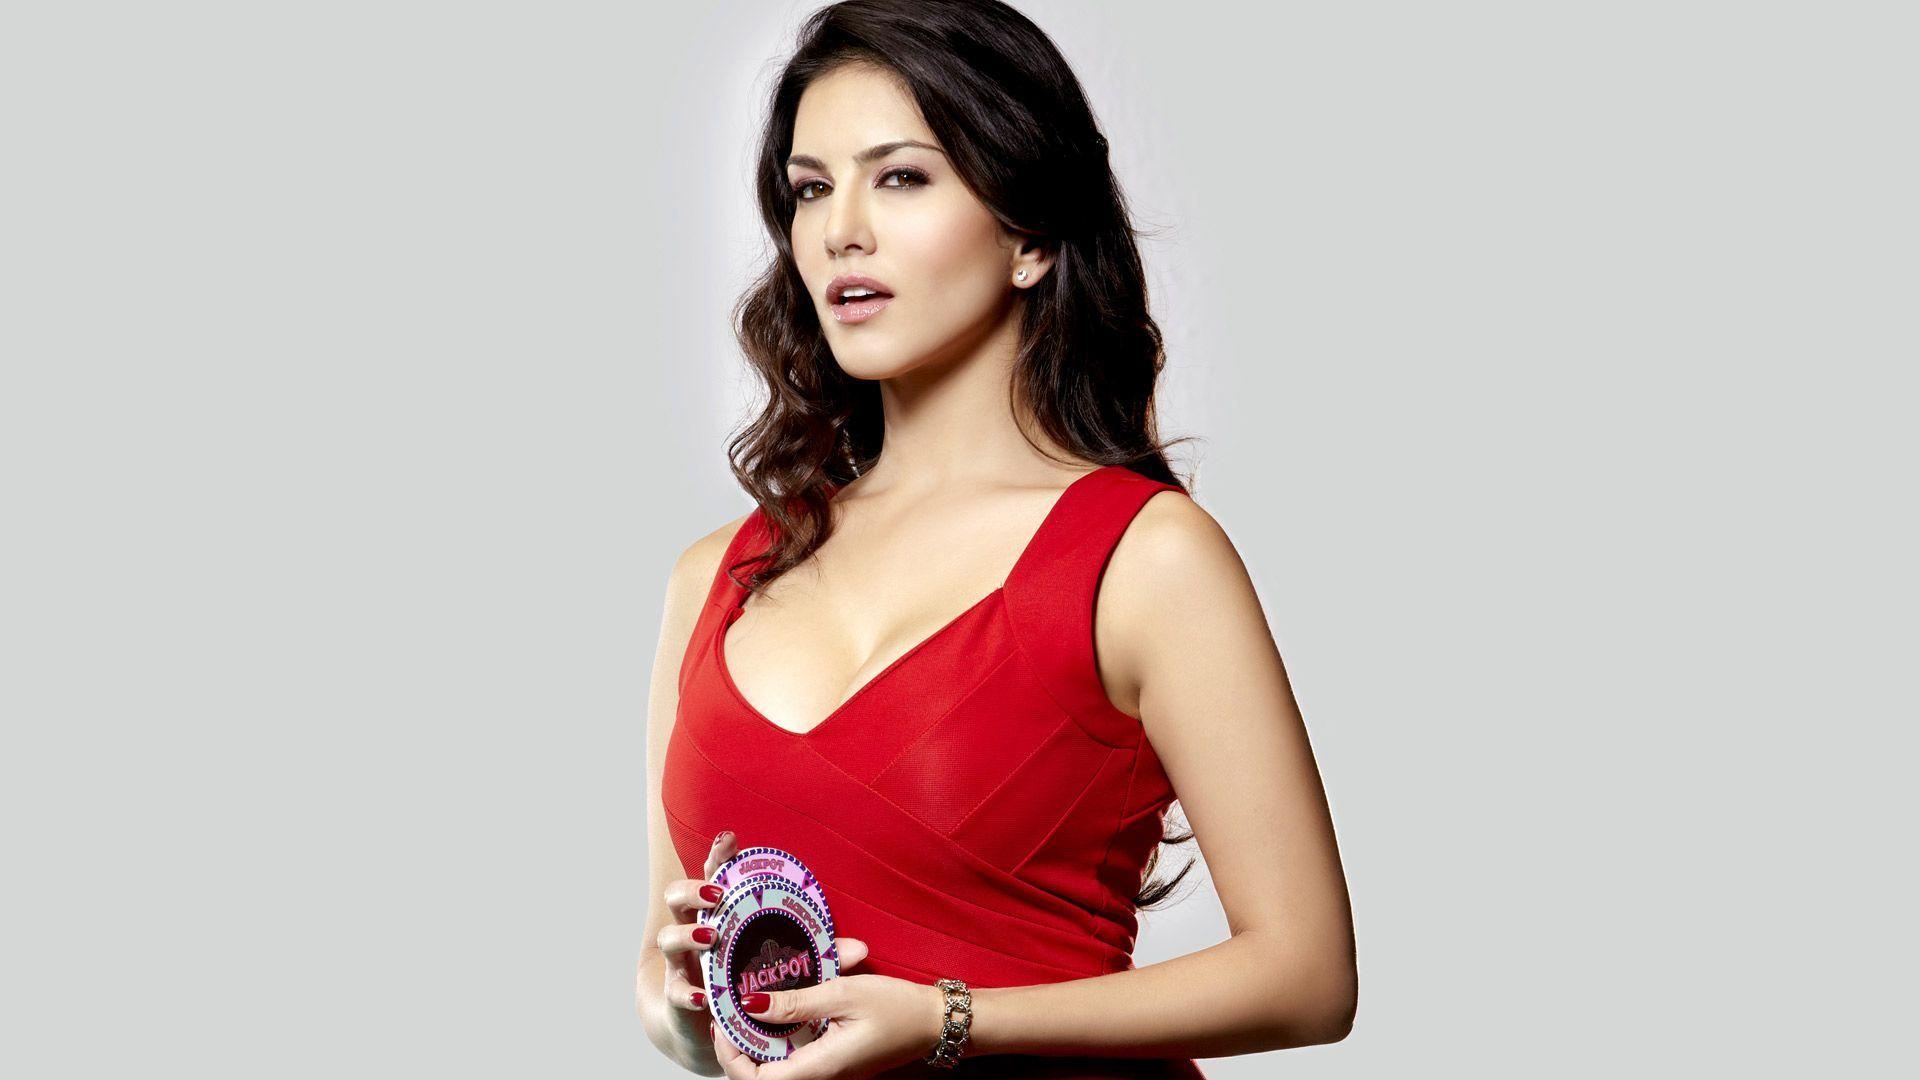 sunny leone wallpapers - wallpaper cave